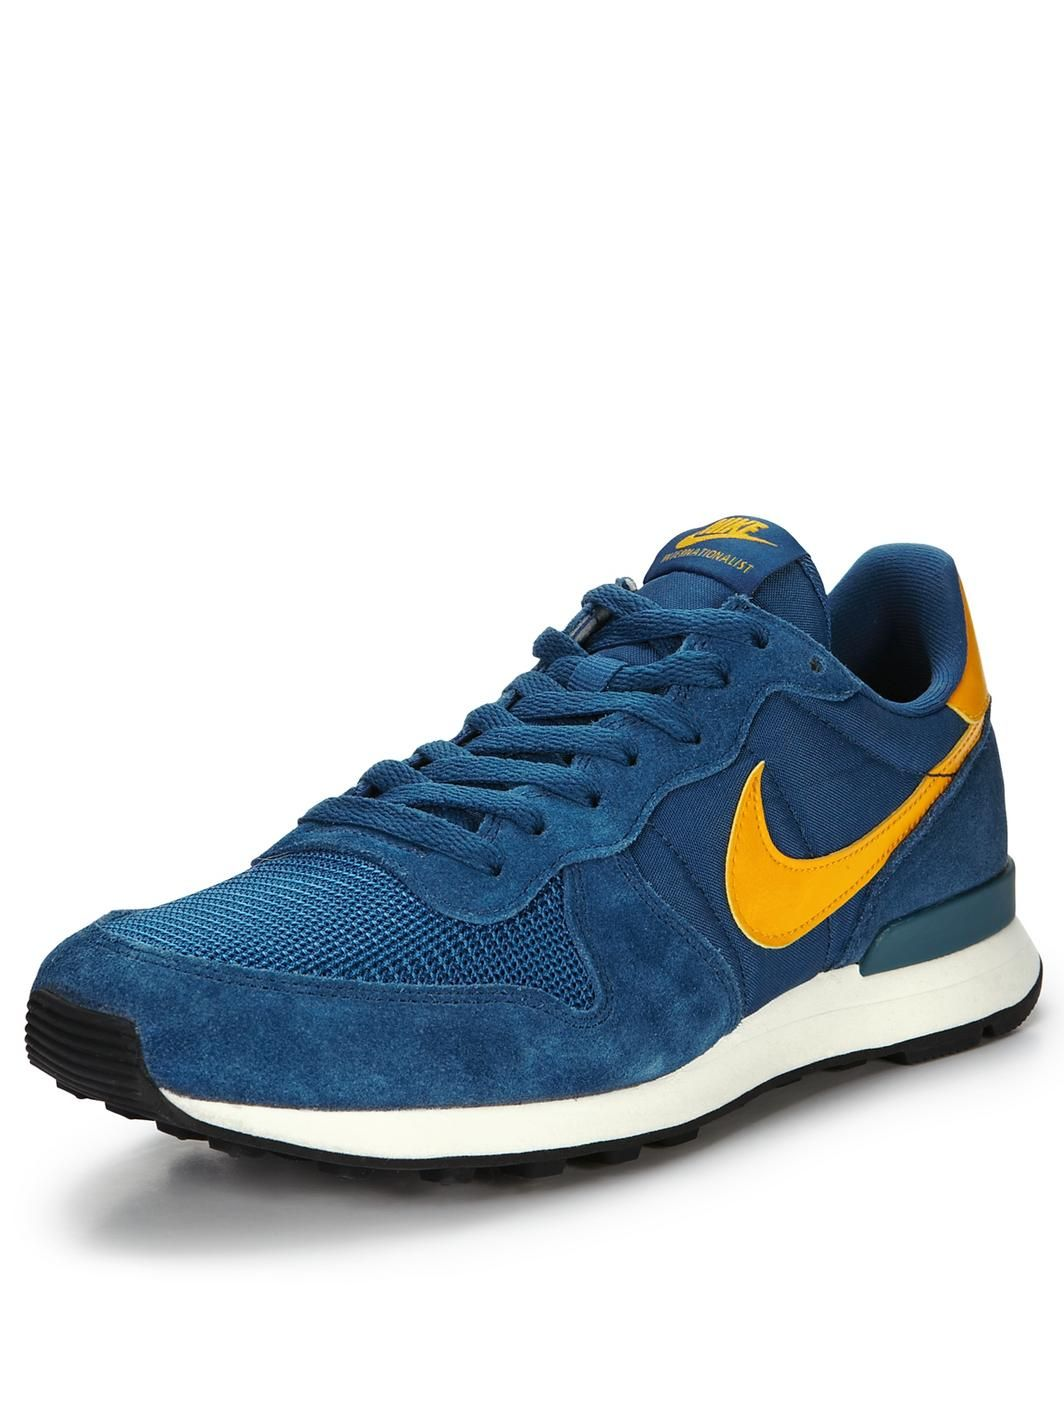 576aa868a70 Nike Internationalist Trainers in Blue for Men (blue yellow)